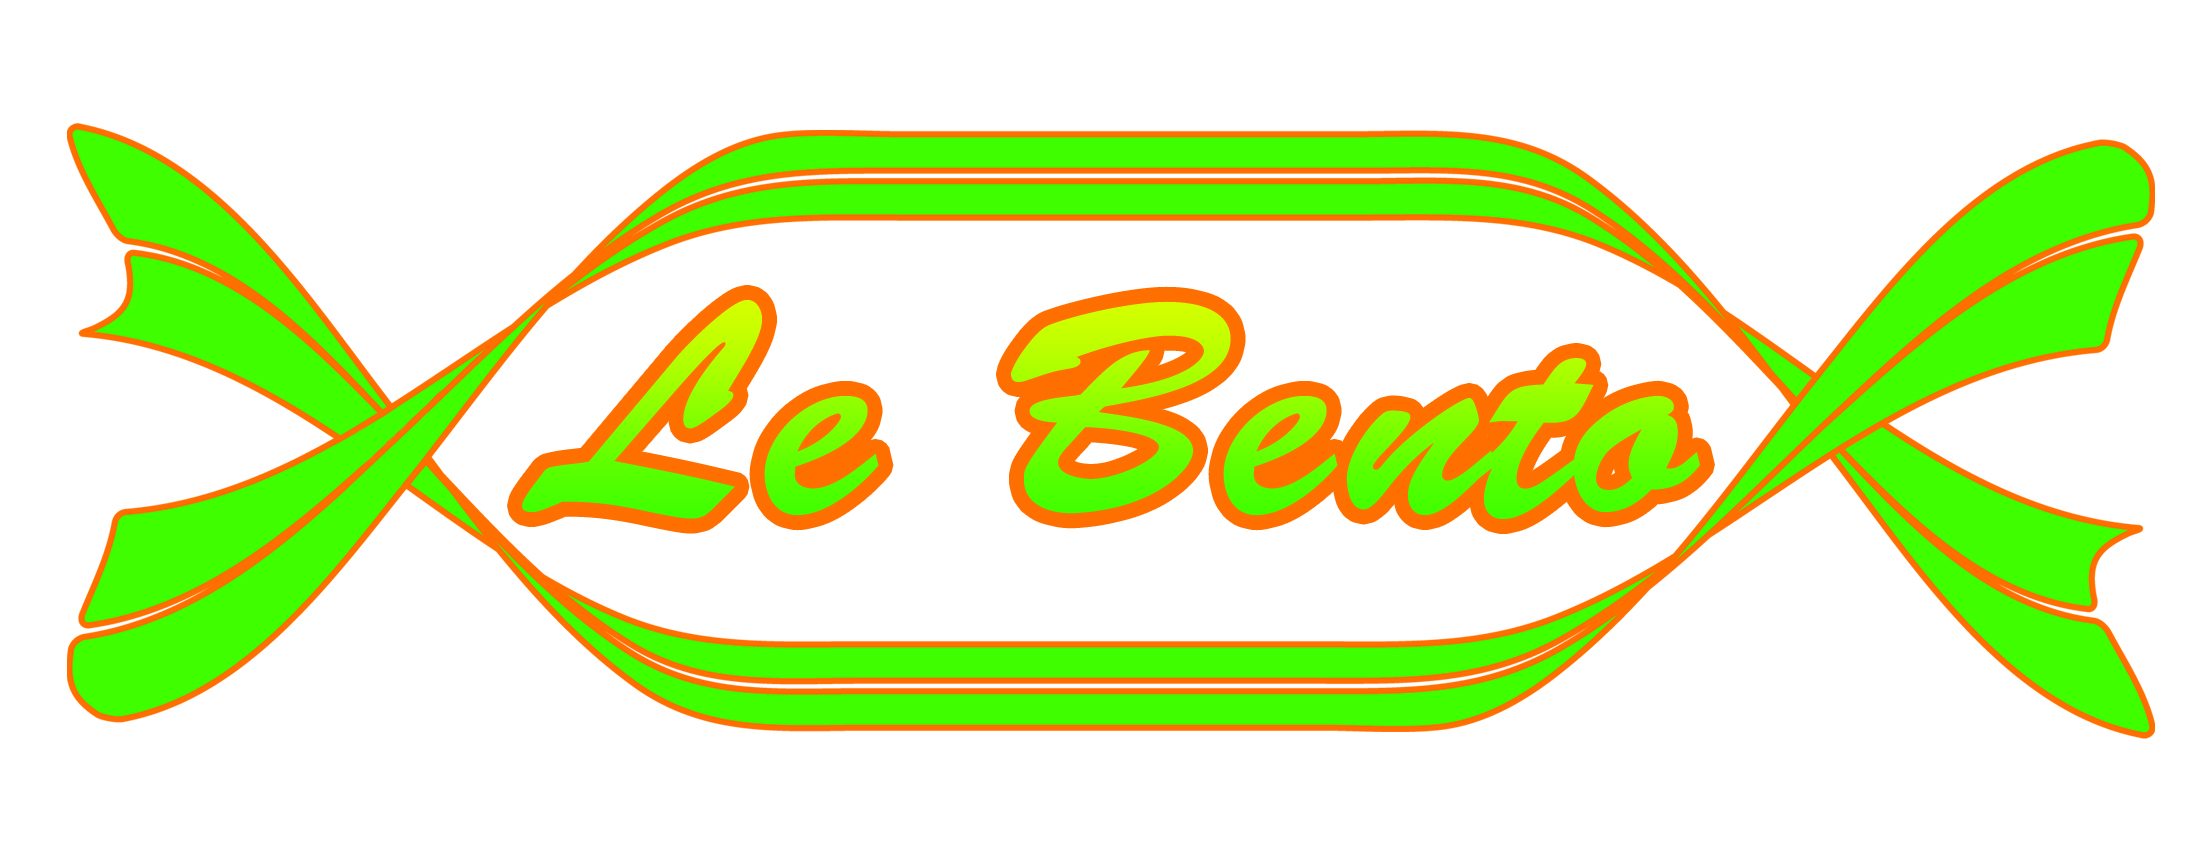 Logo Design by Bolshoi Booze - Entry No. 52 in the Logo Design Contest Captivating Logo Design for Le Bento.